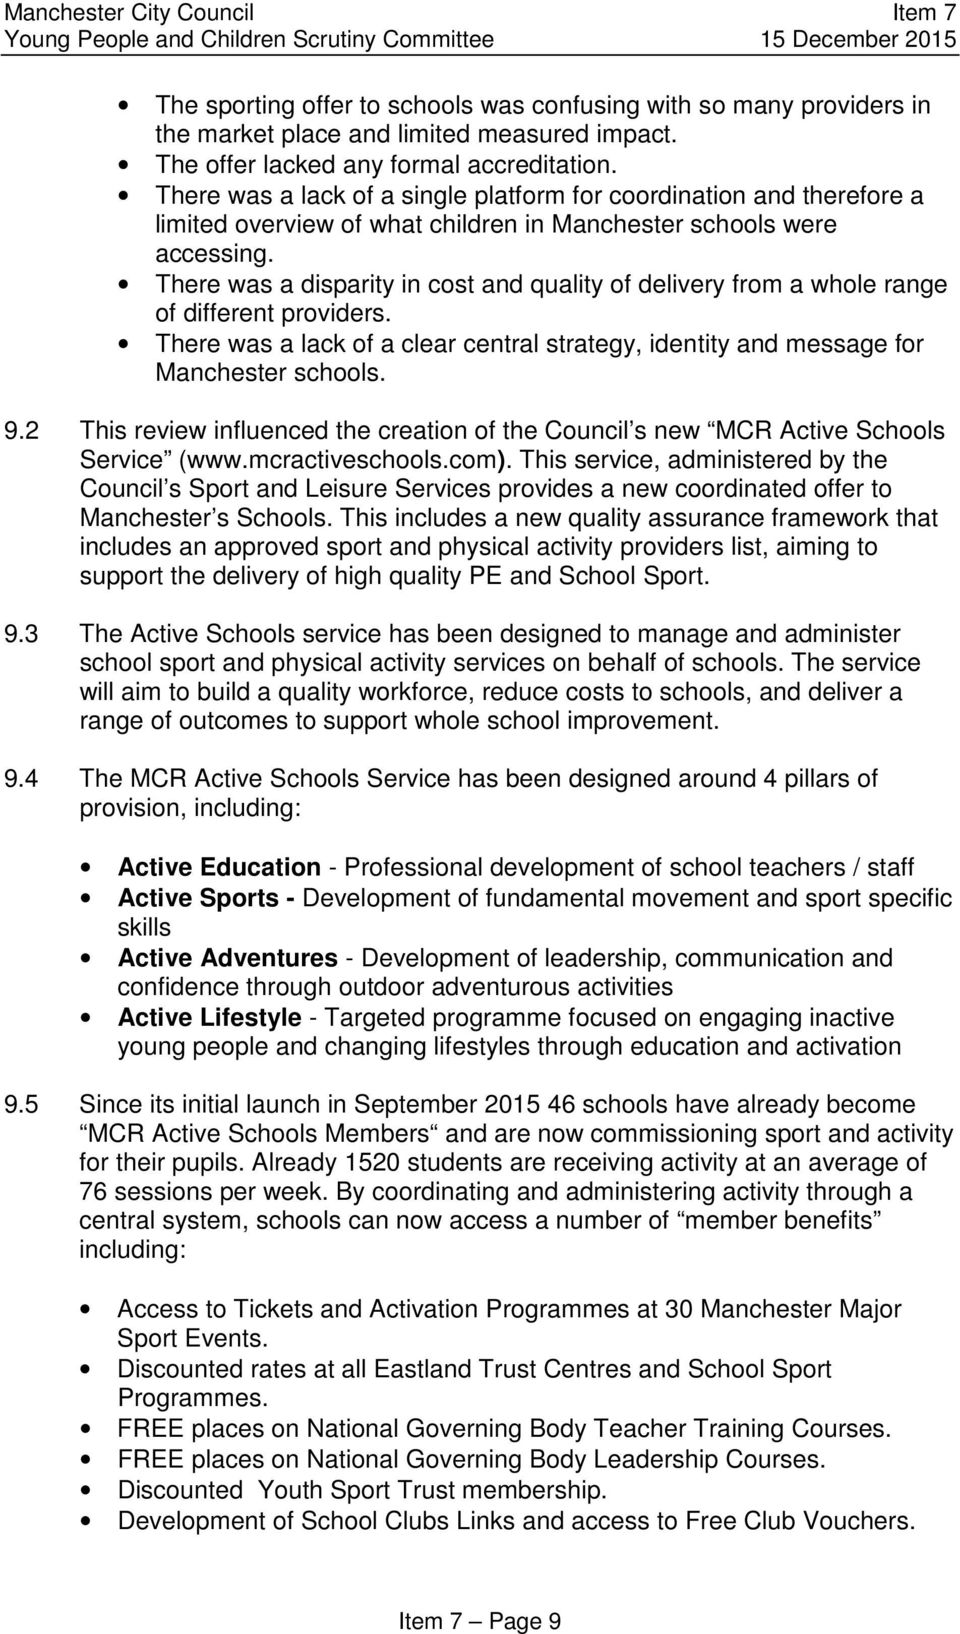 There was a disparity in cost and quality of delivery from a whole range of different providers. There was a lack of a clear central strategy, identity and message for Manchester schools. 9.